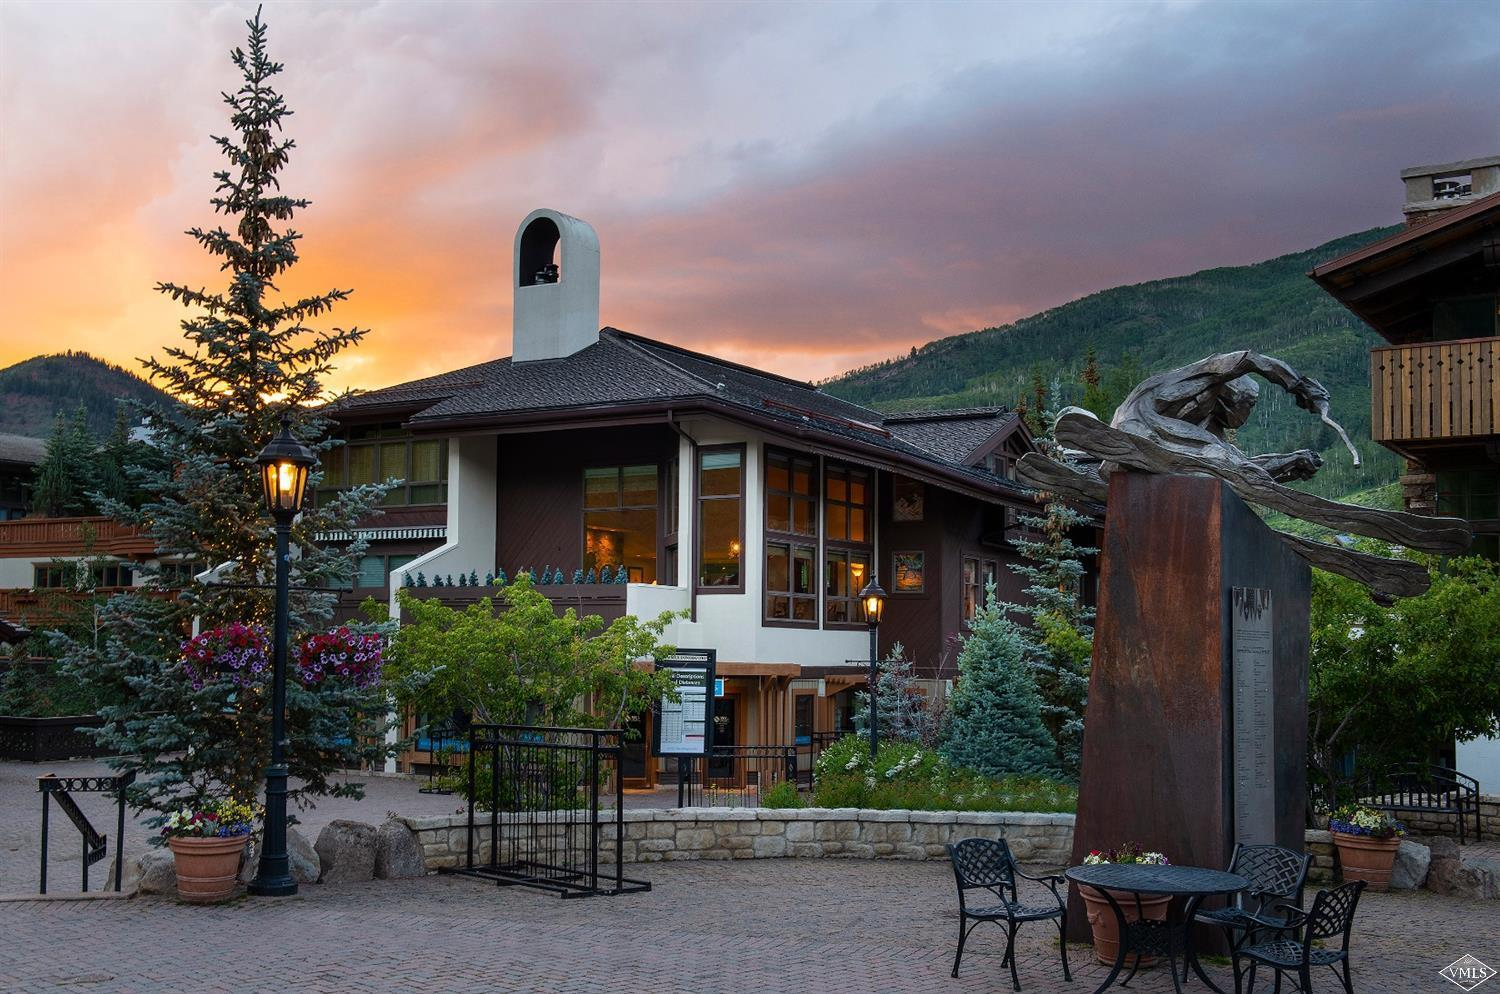 244 Wall Street, R2, Vail, Co 81657 Property Photo